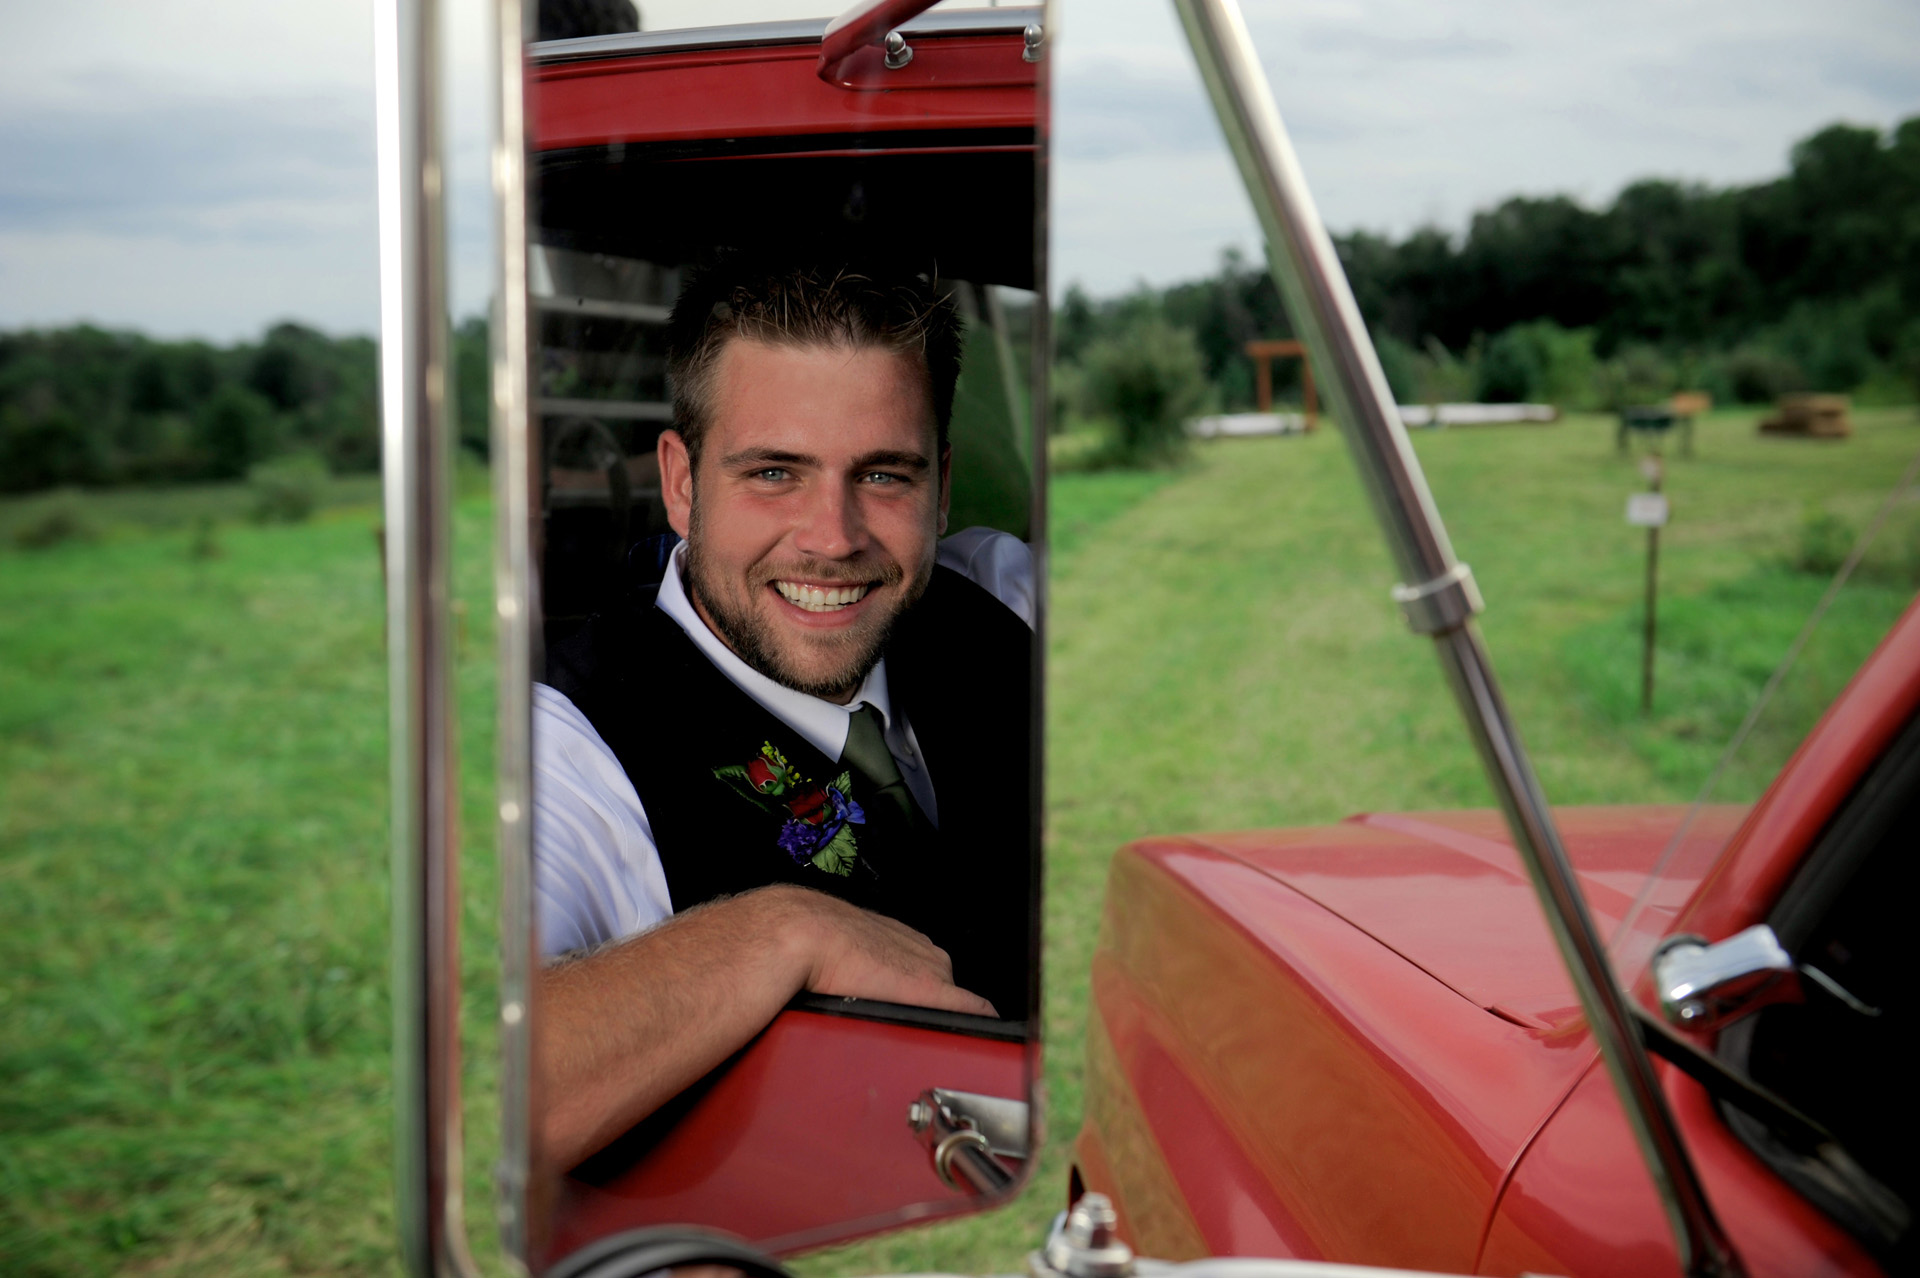 Michigan country wedding wedding photographer's photo of a groomsman in the side mirror of a pick up during a Michigan country wedding.